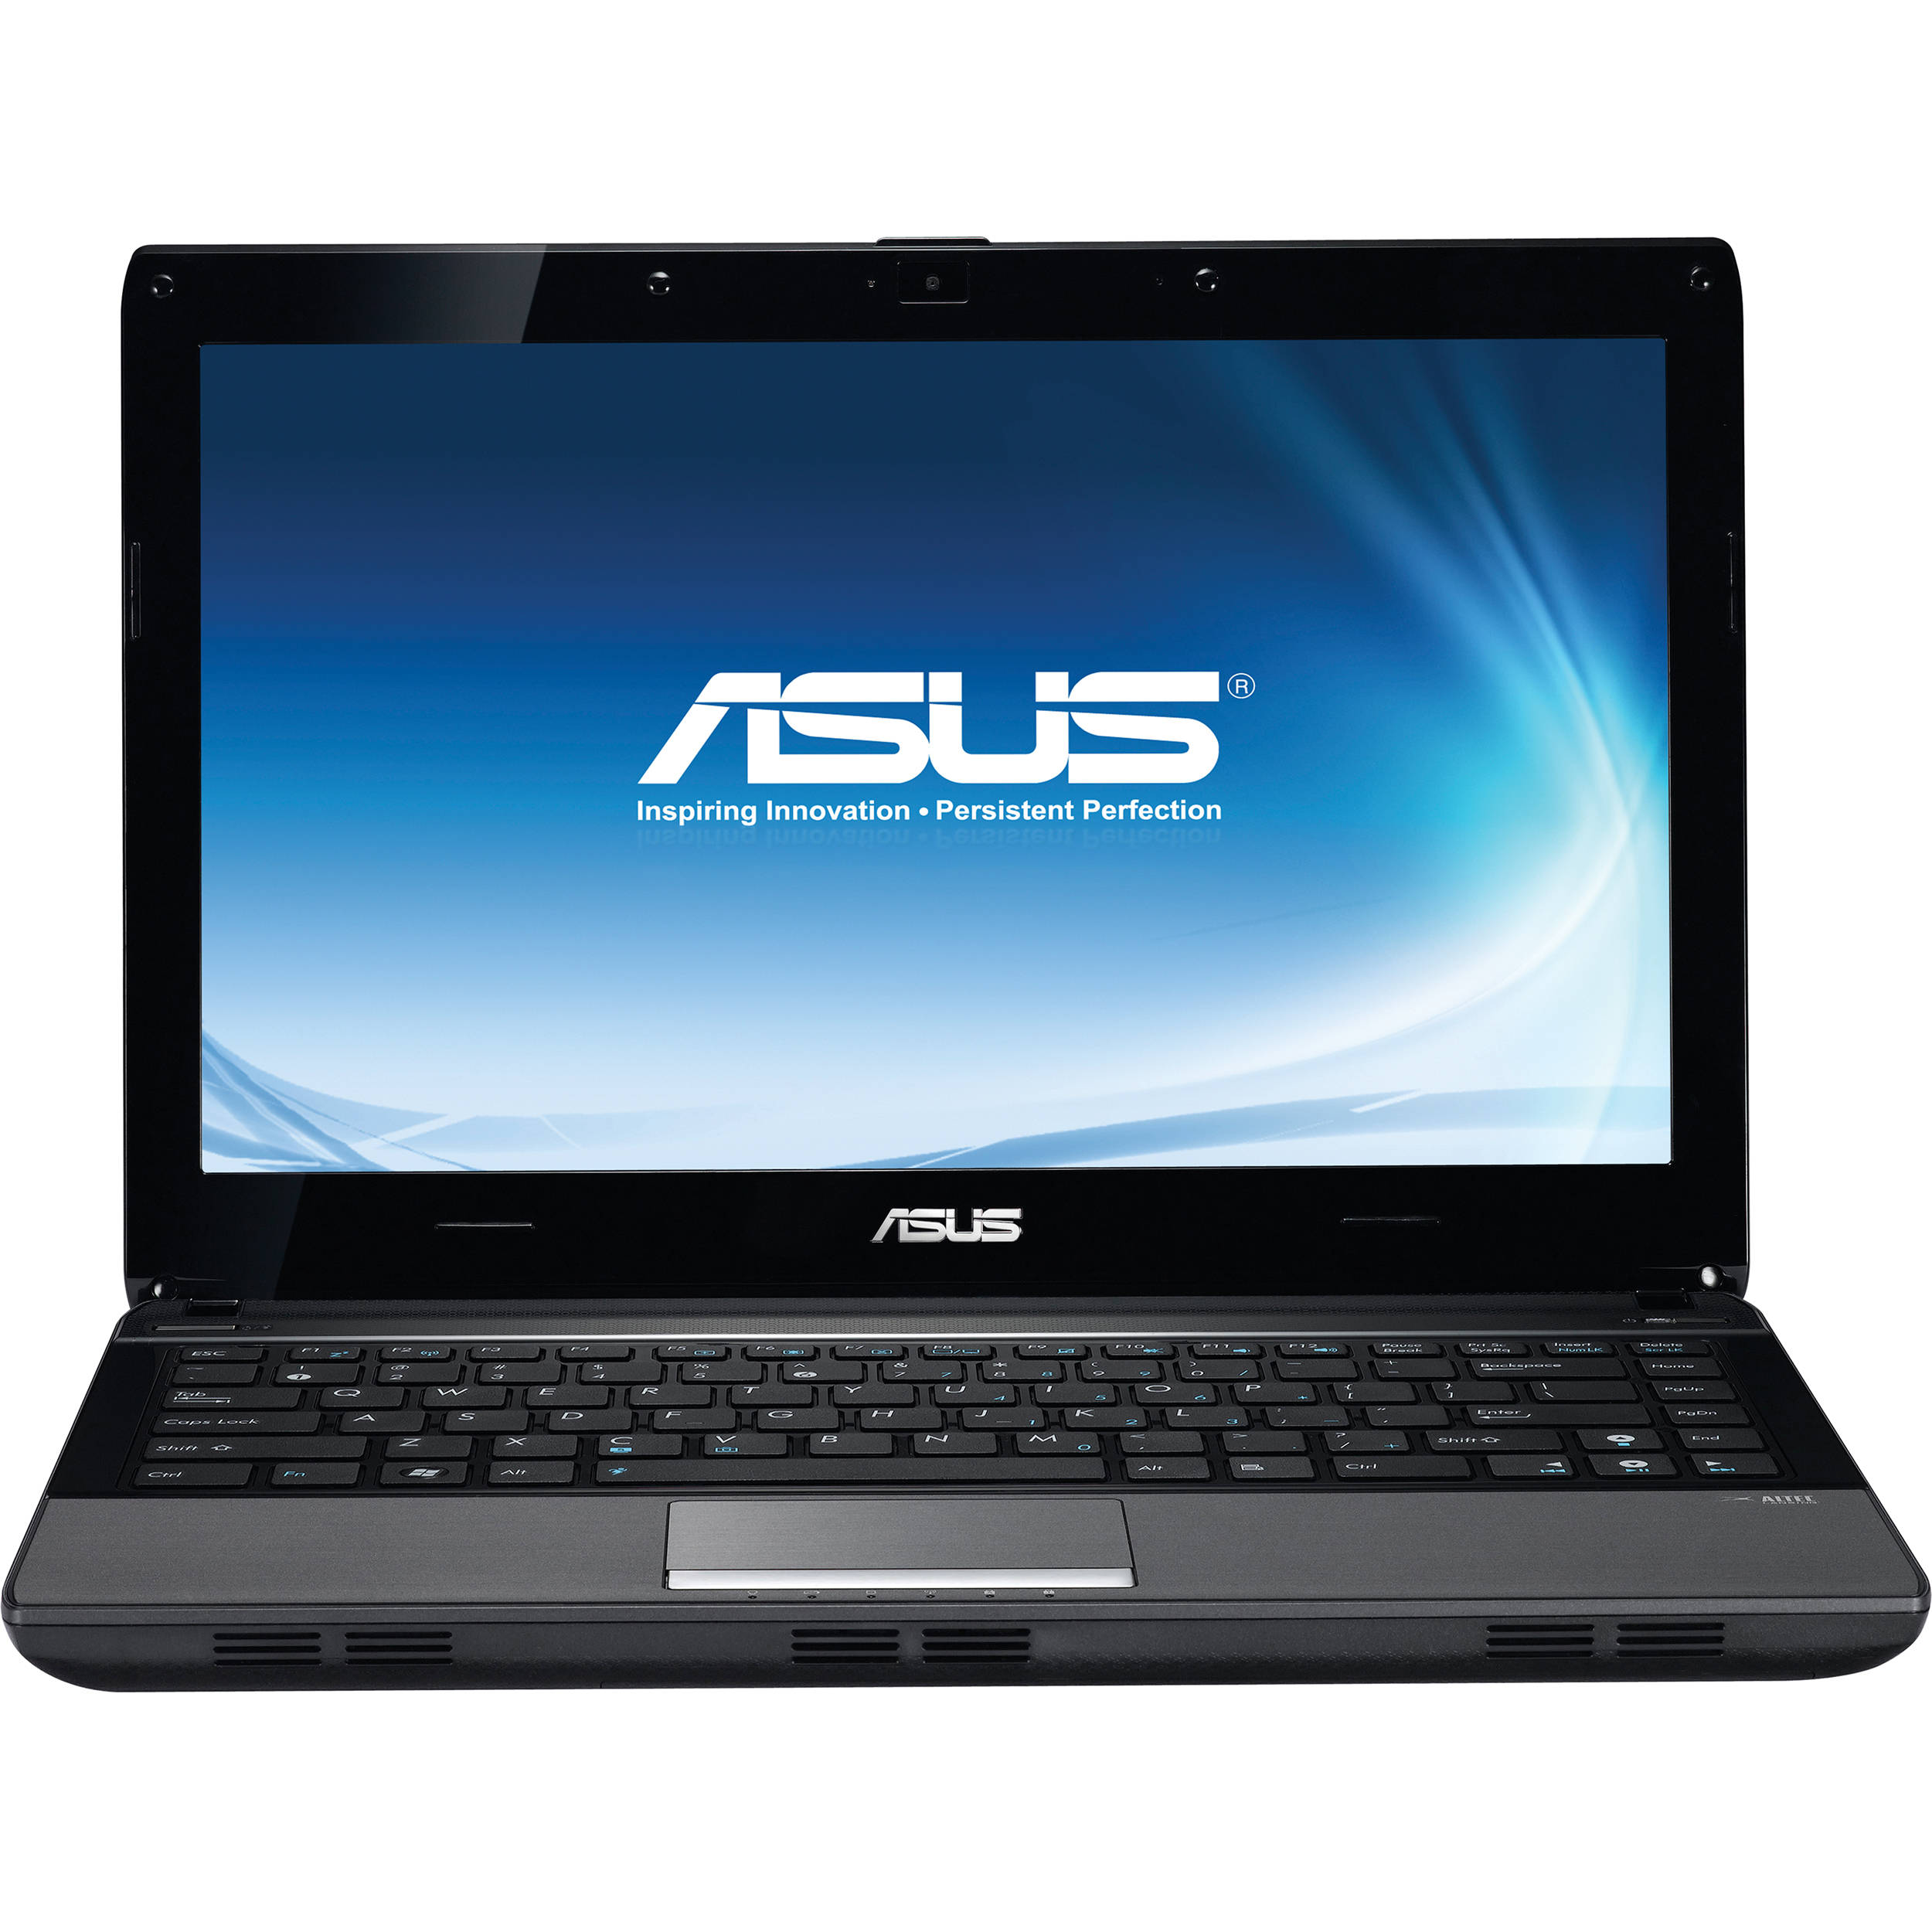 ASUS U31SD NOTEBOOK FAST BOOT DRIVER DOWNLOAD FREE